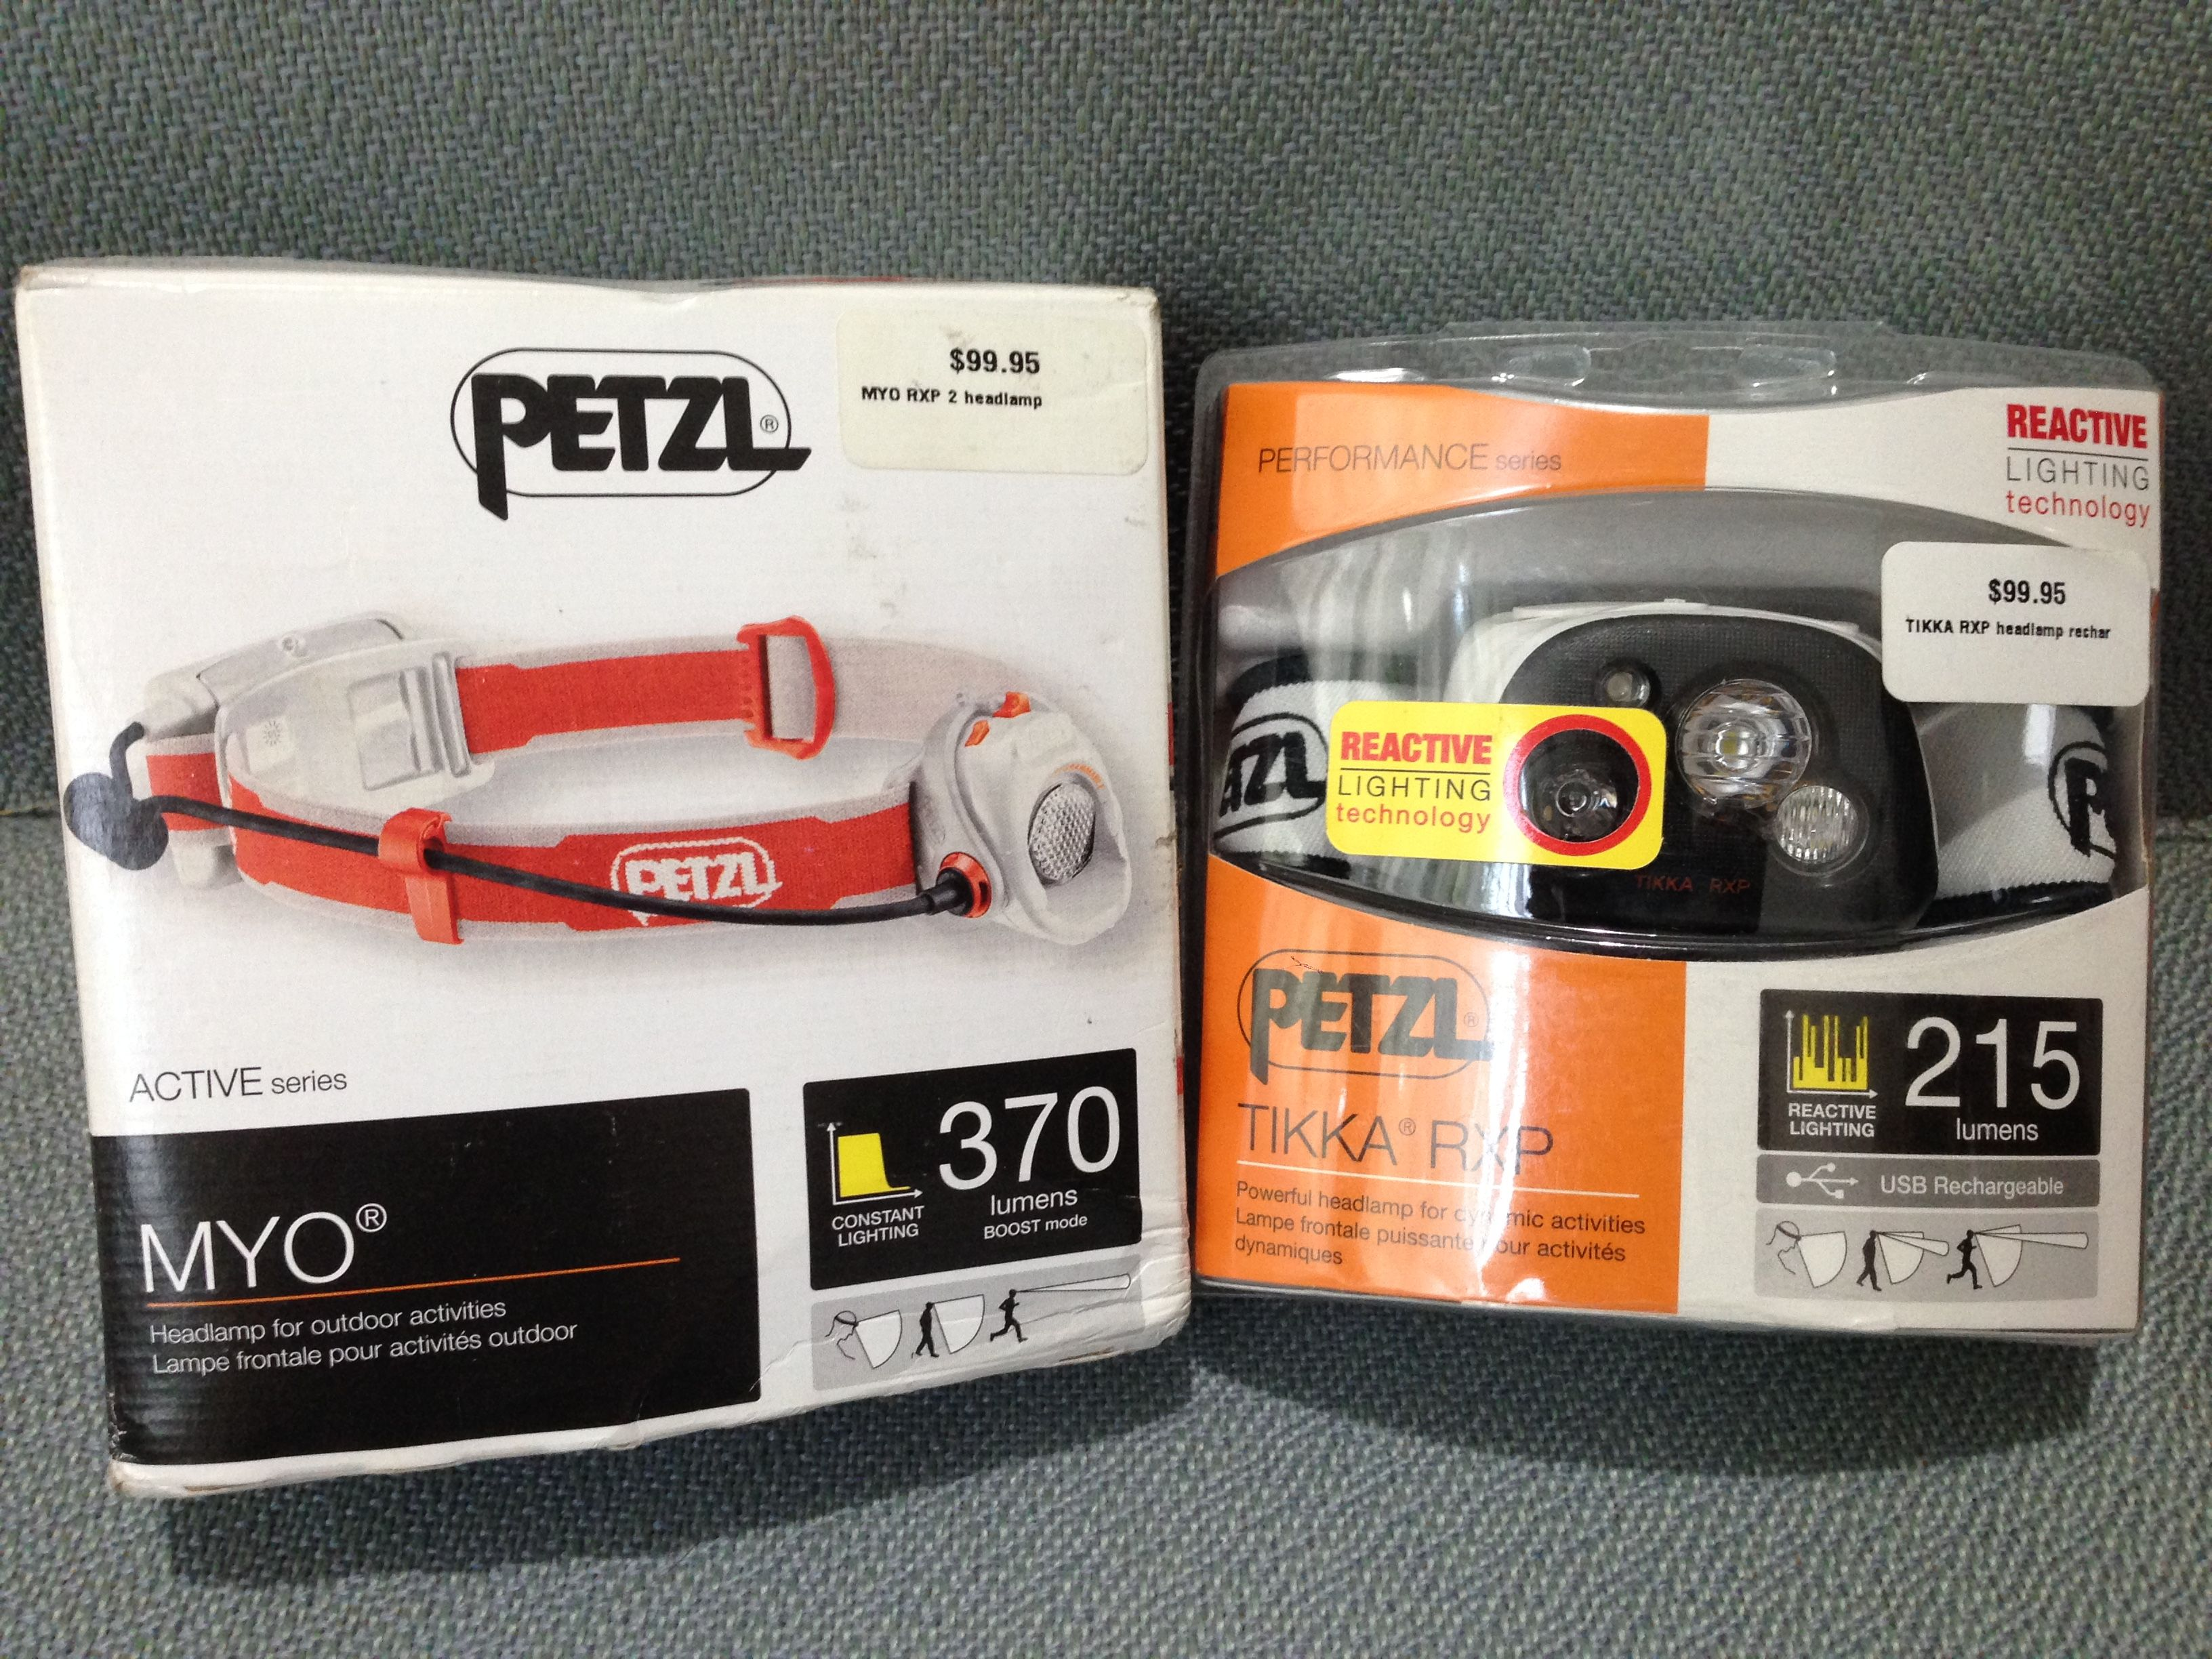 Petzl Tikka Rxp 215 Lumens And Myo Rxp 370 Lumens Headlamps Each